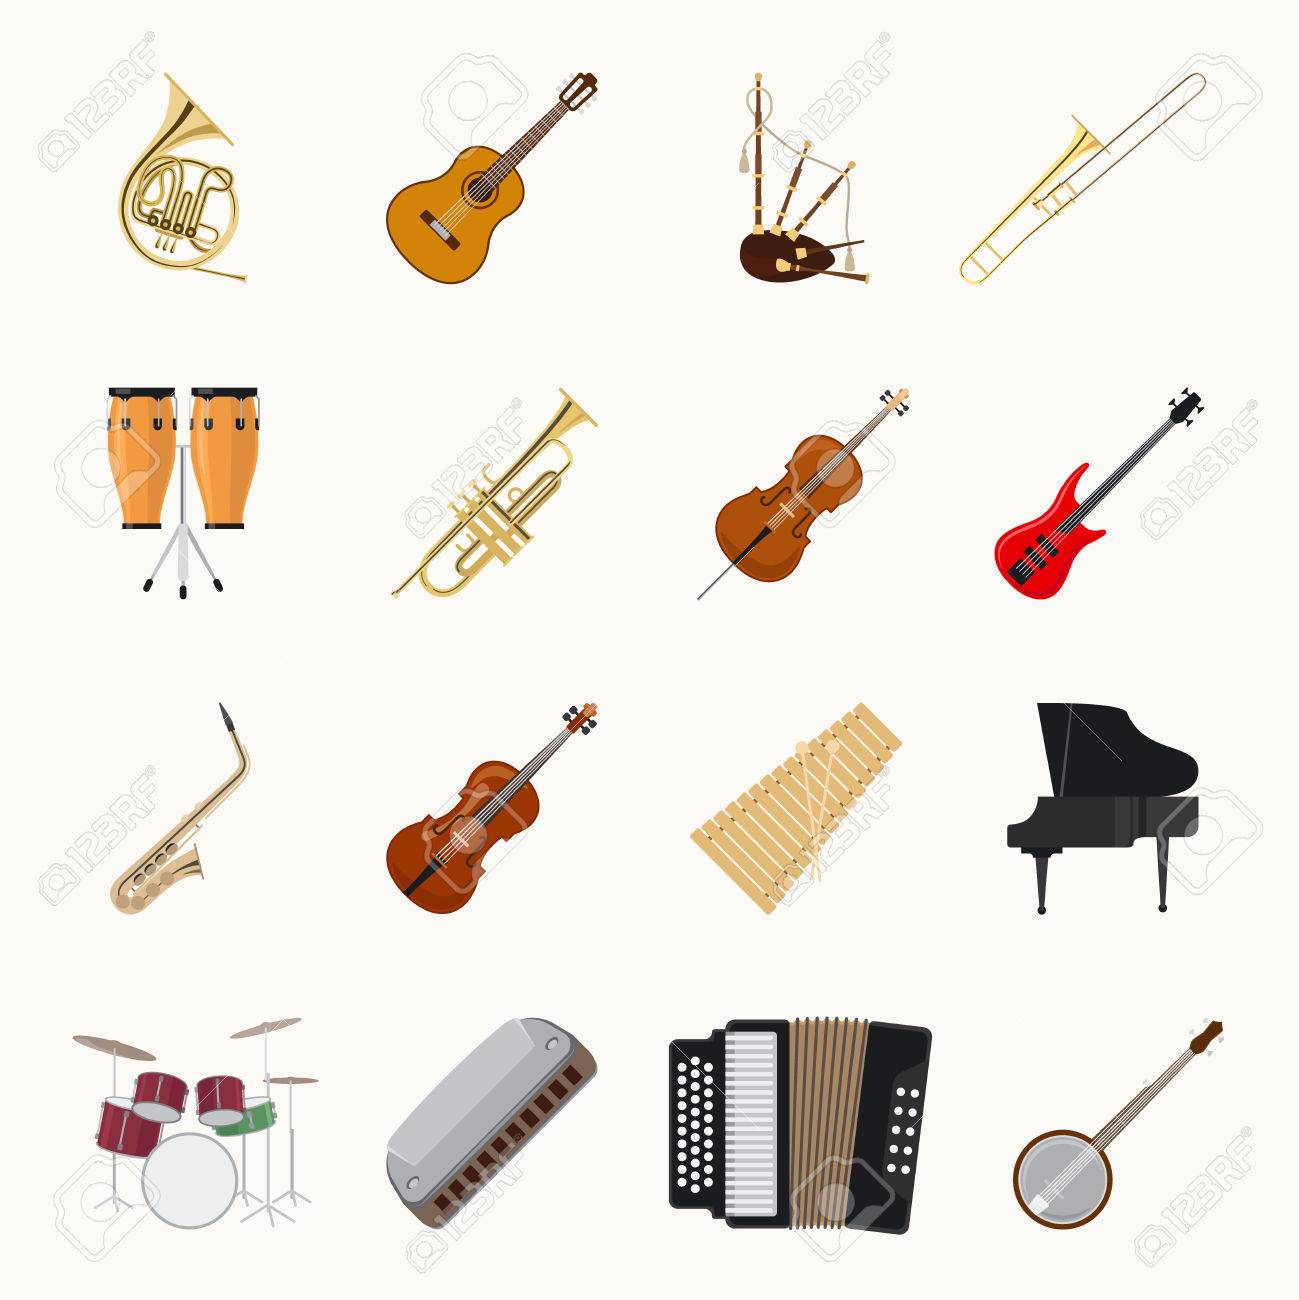 Musical instruments icons isolated on white background. Orchestra music band vector illustration - 61321393